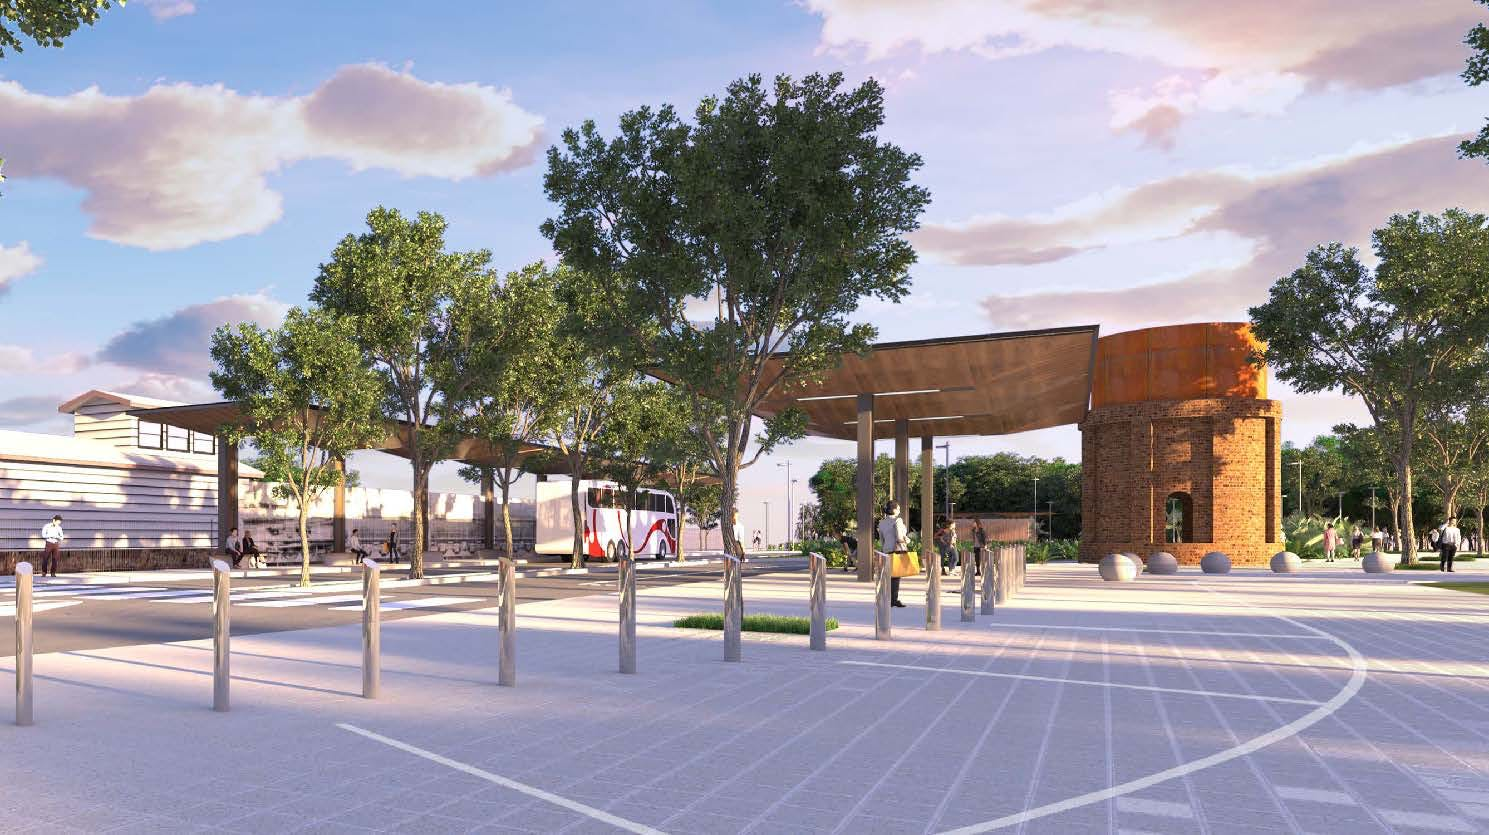 Artist's impression of the Byron Bay Bus Interchange, subject to detailed design.